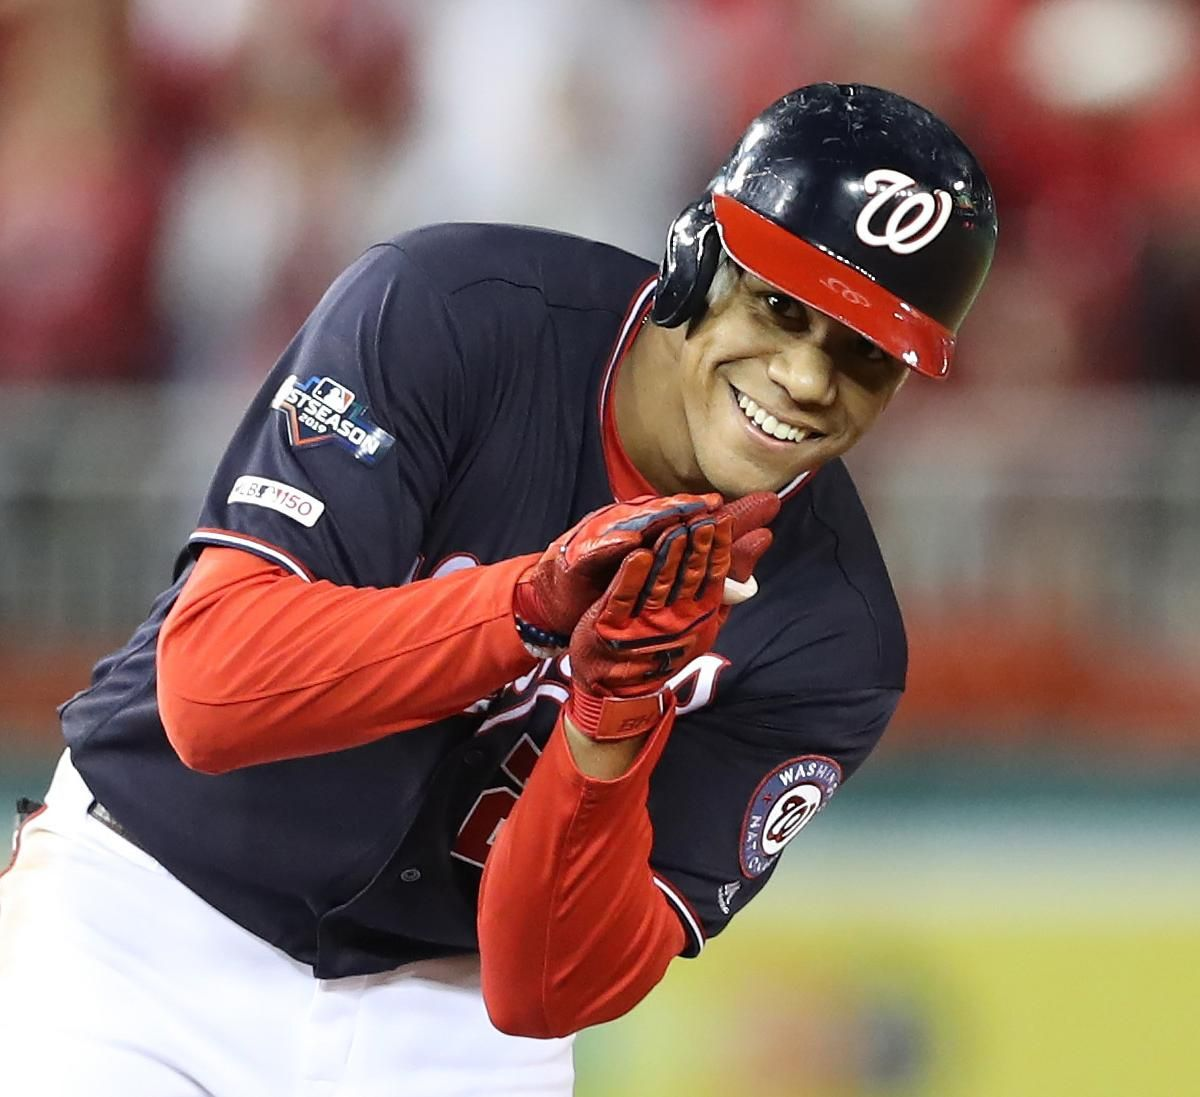 The Latest Washington Nationals News: Nationals Sweep Cardinals In 2019 NLCS, Advance To 1st